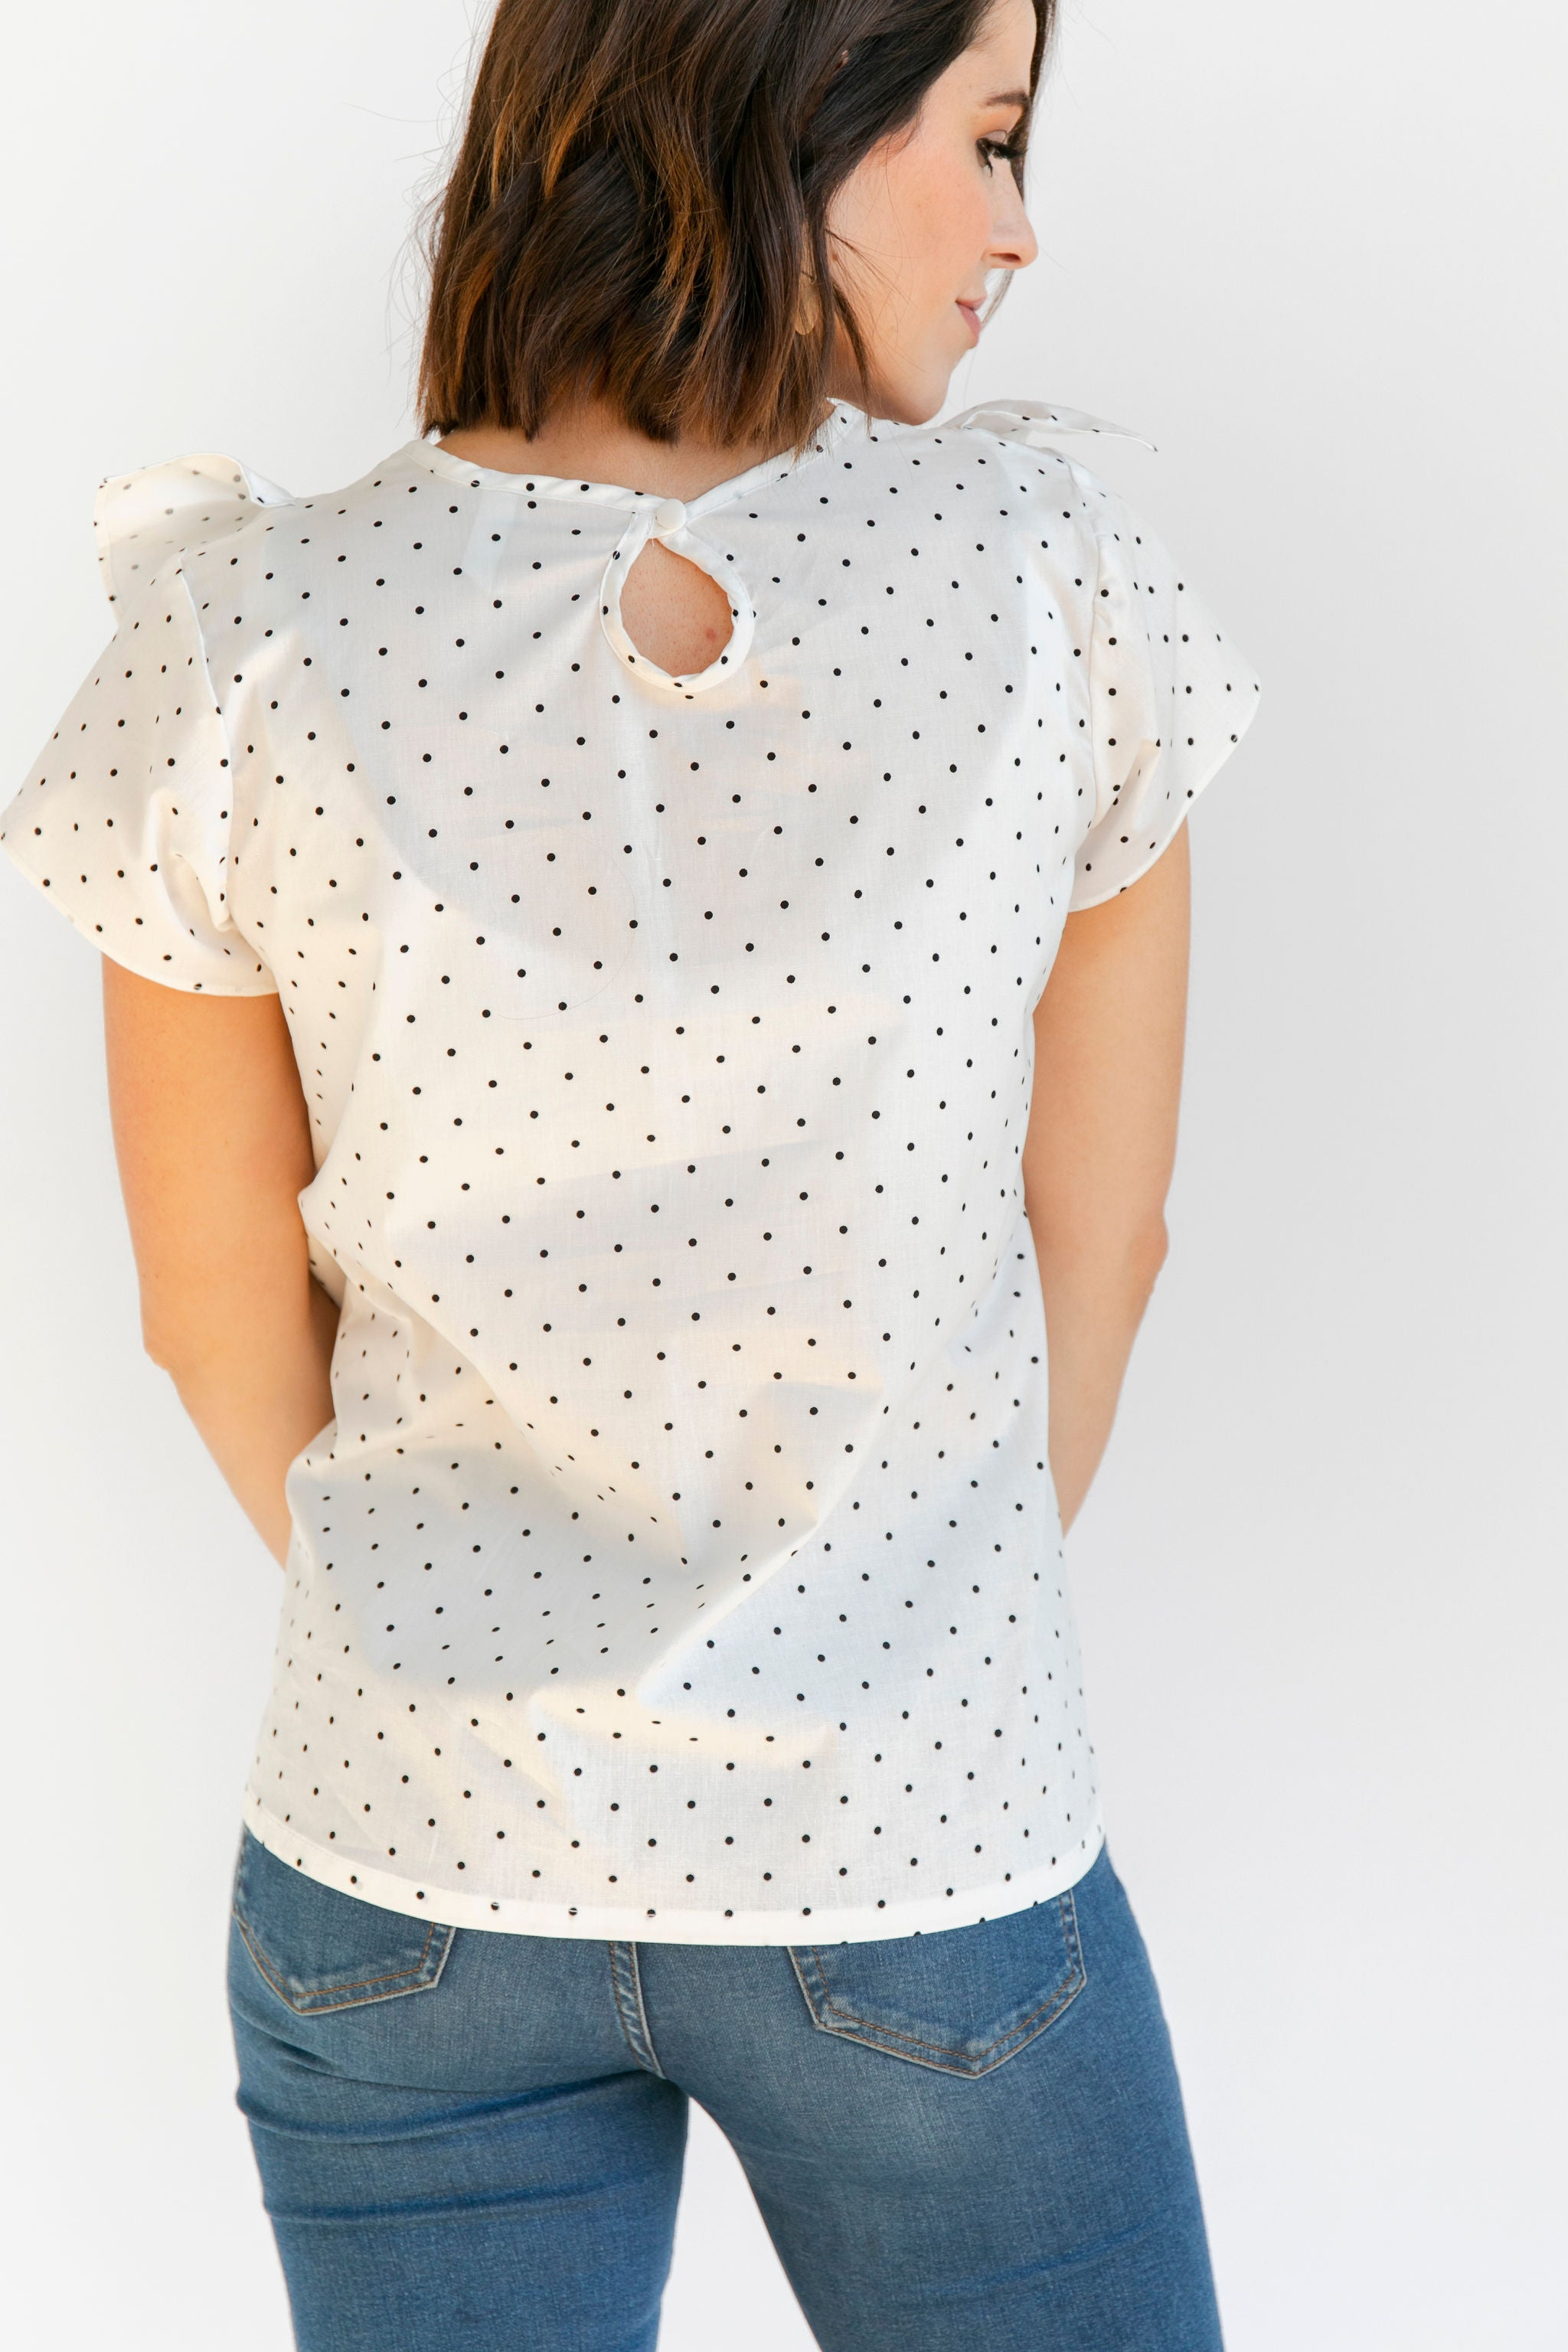 The Ruffle Top - White + Black Dot